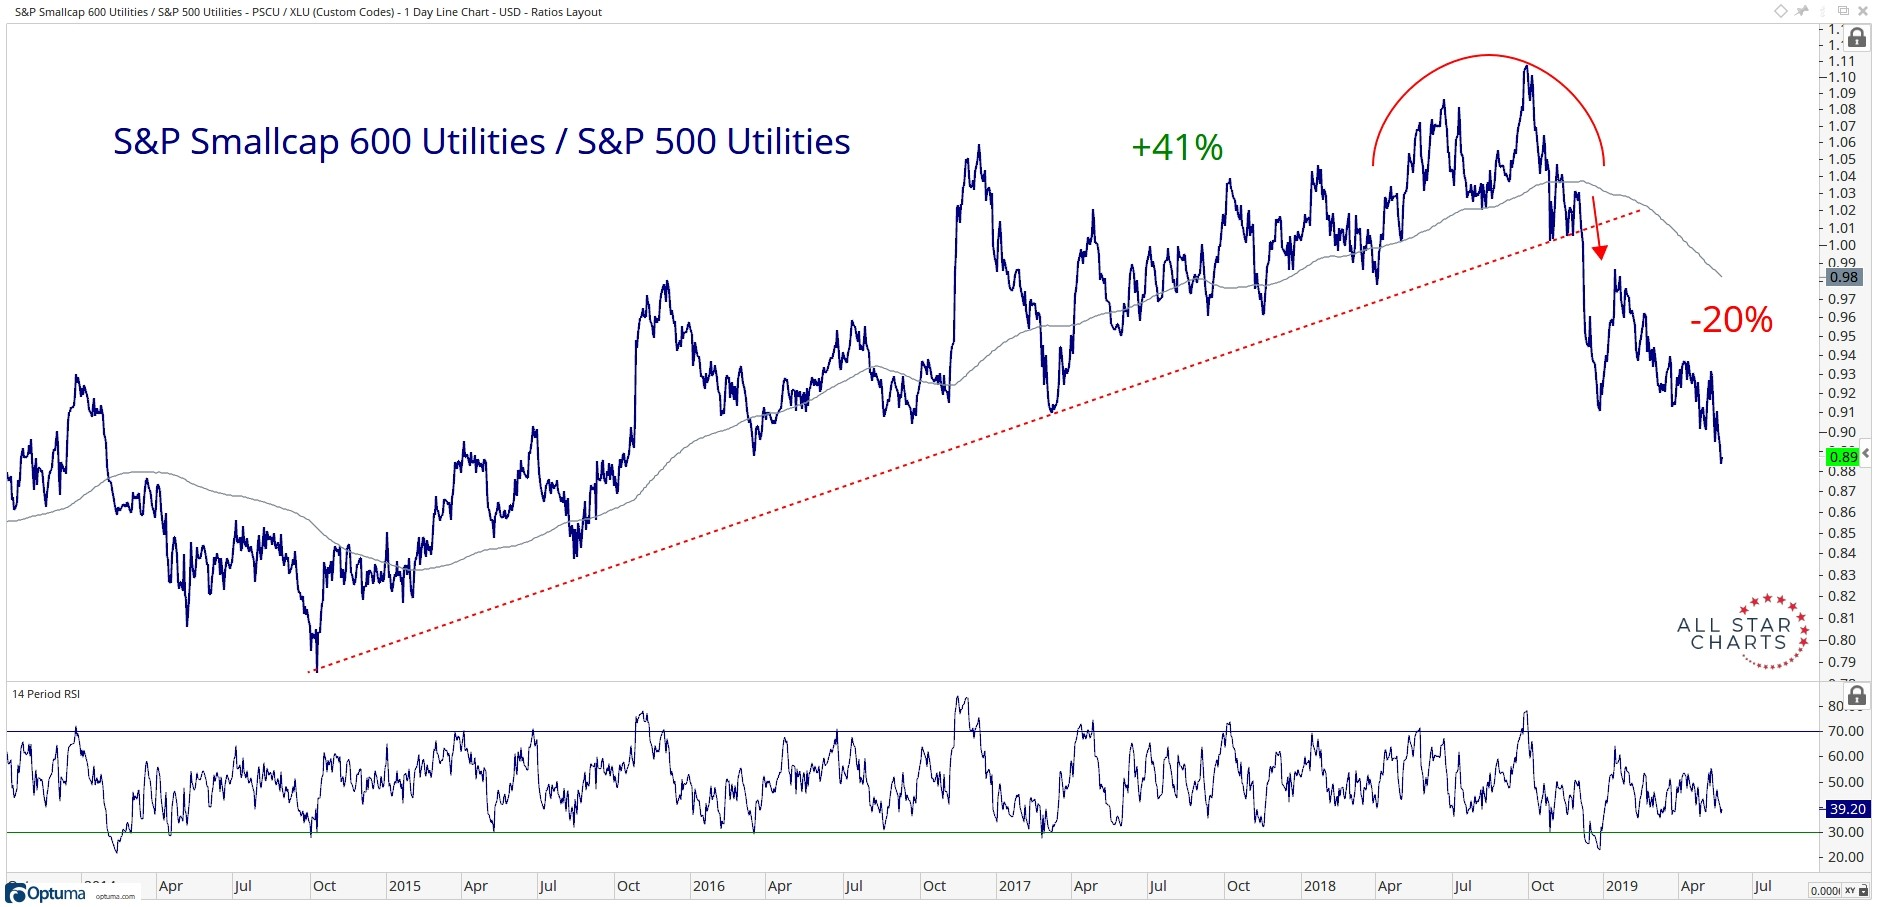 Five-year comparison of the performance of the S&P Small Cap 600 Utilities relative to the S&P 500 Utilities.